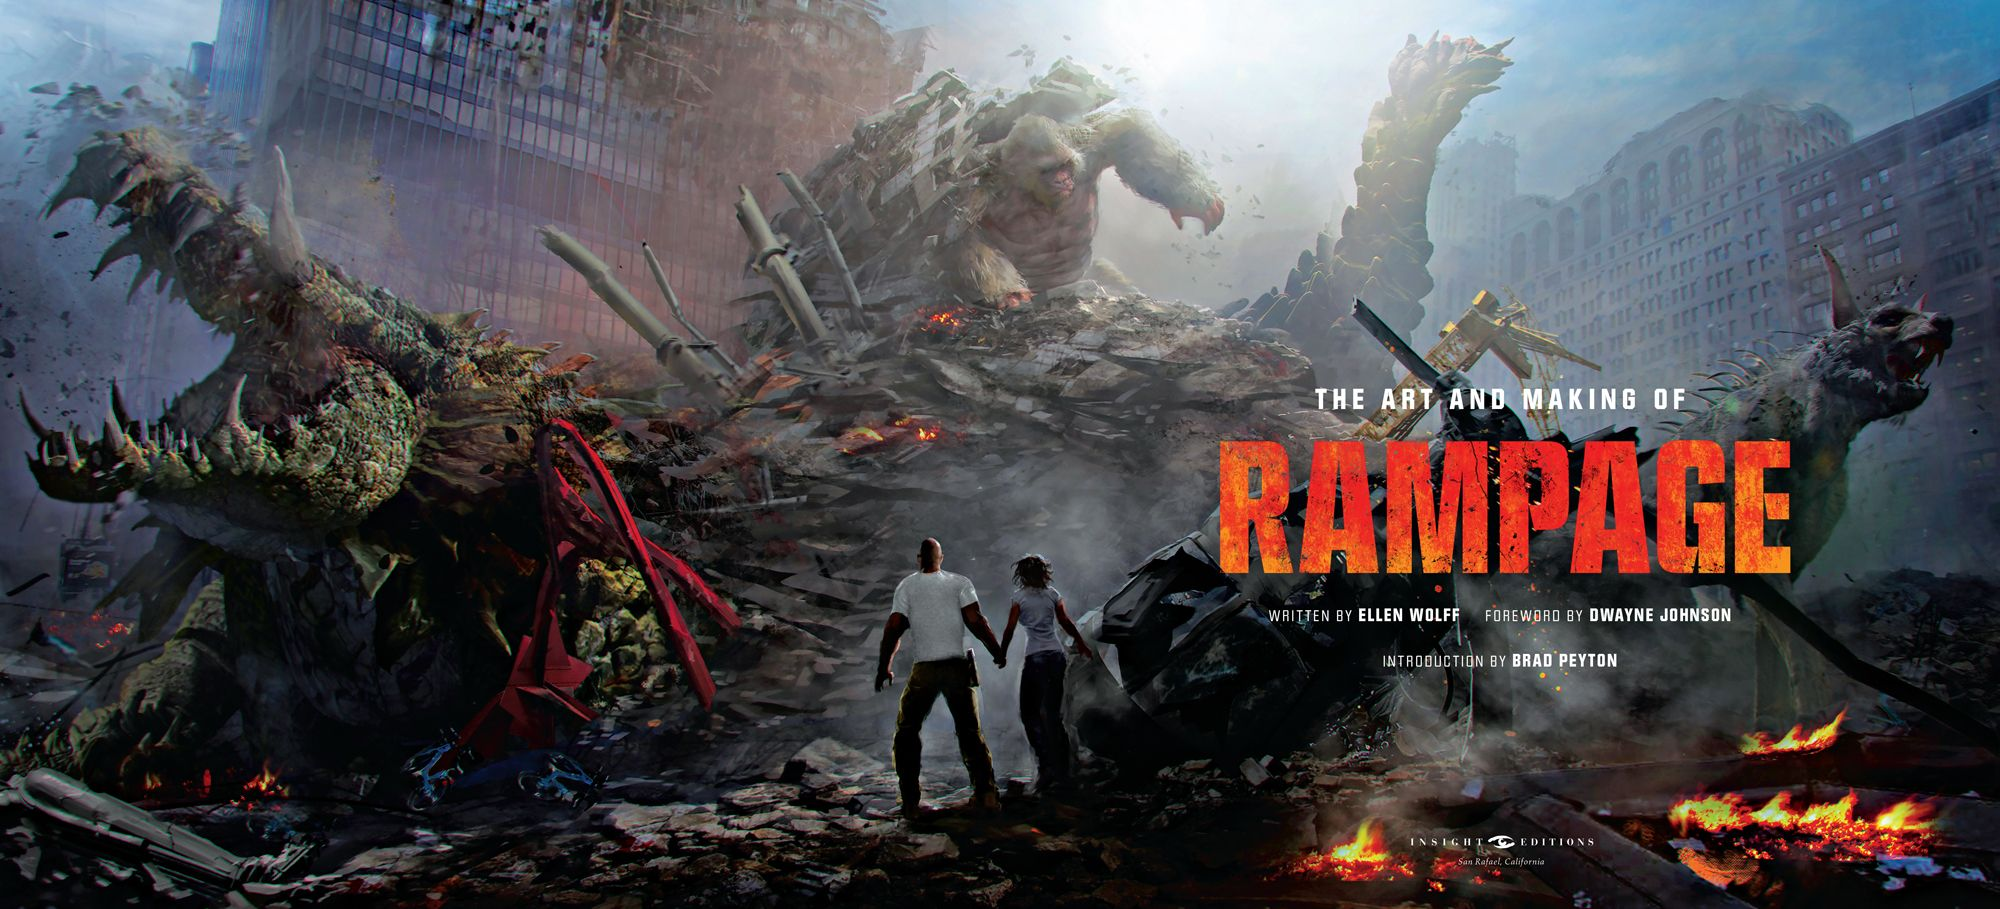 The Art And Making Of Rampage Reveals Behind The Scenes Secrets